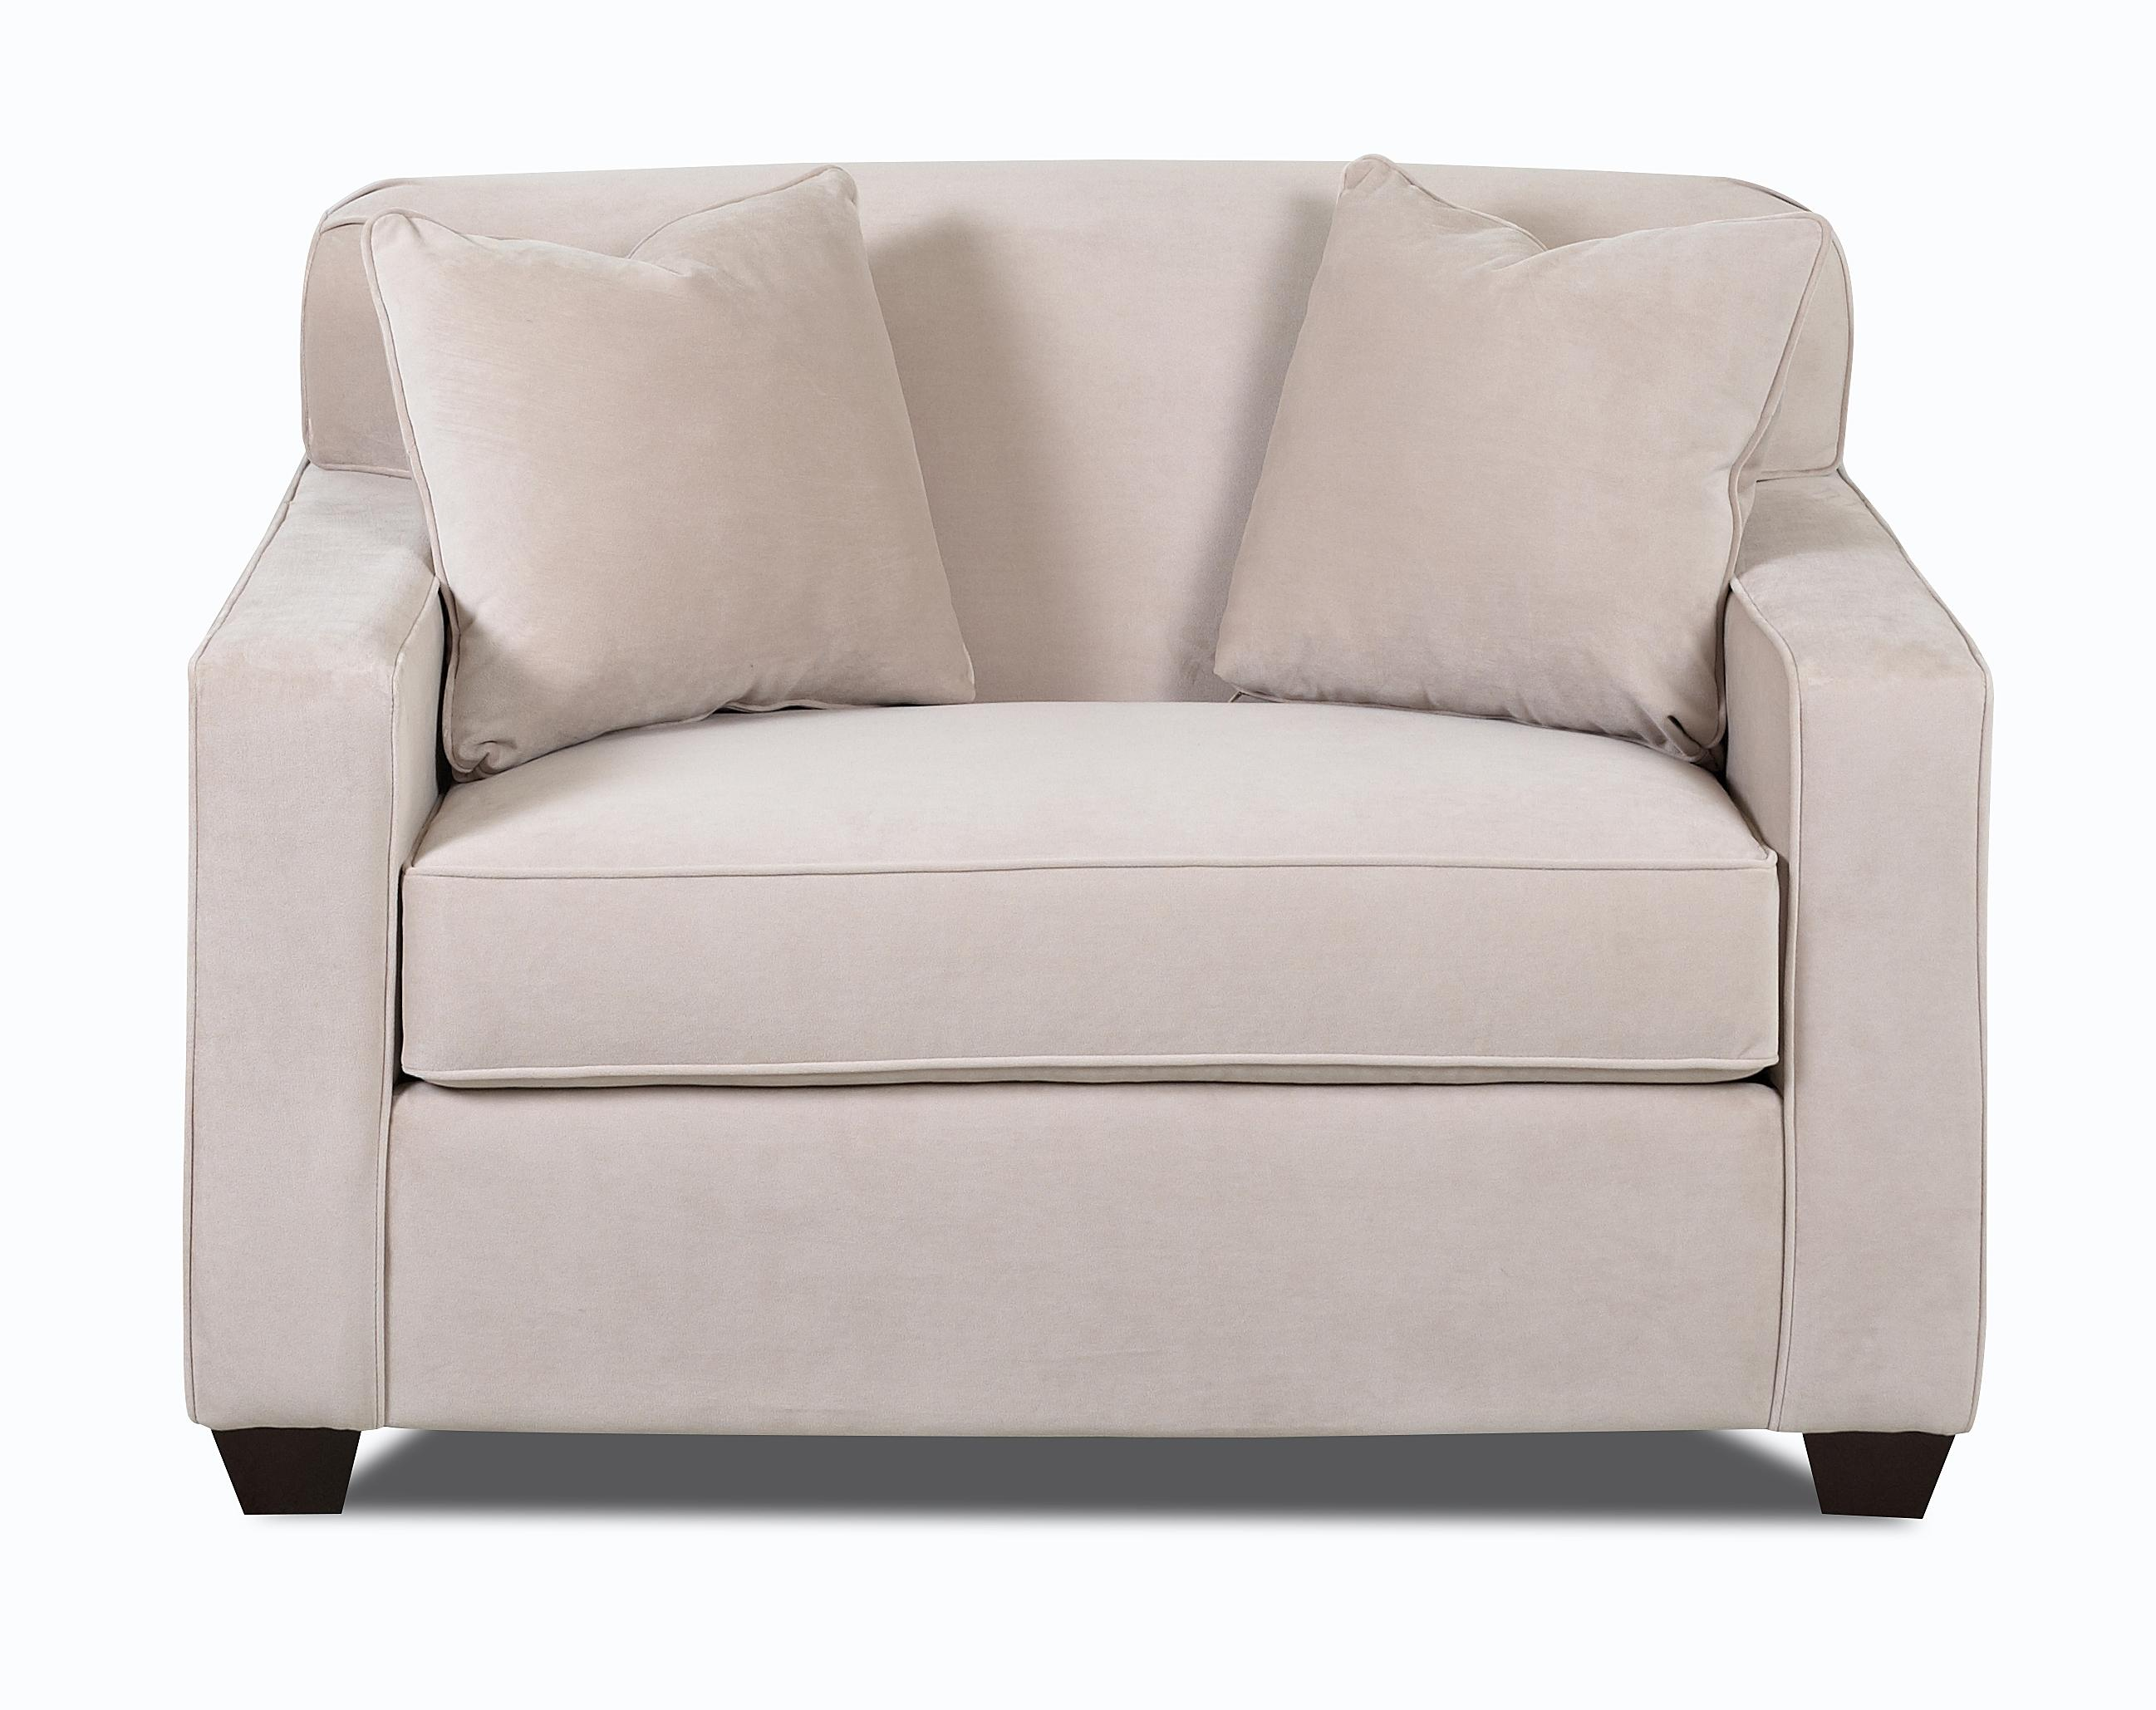 Klaussner Gillis Dreamquest Chair Sleeper - Item Number: K70800 DCSL